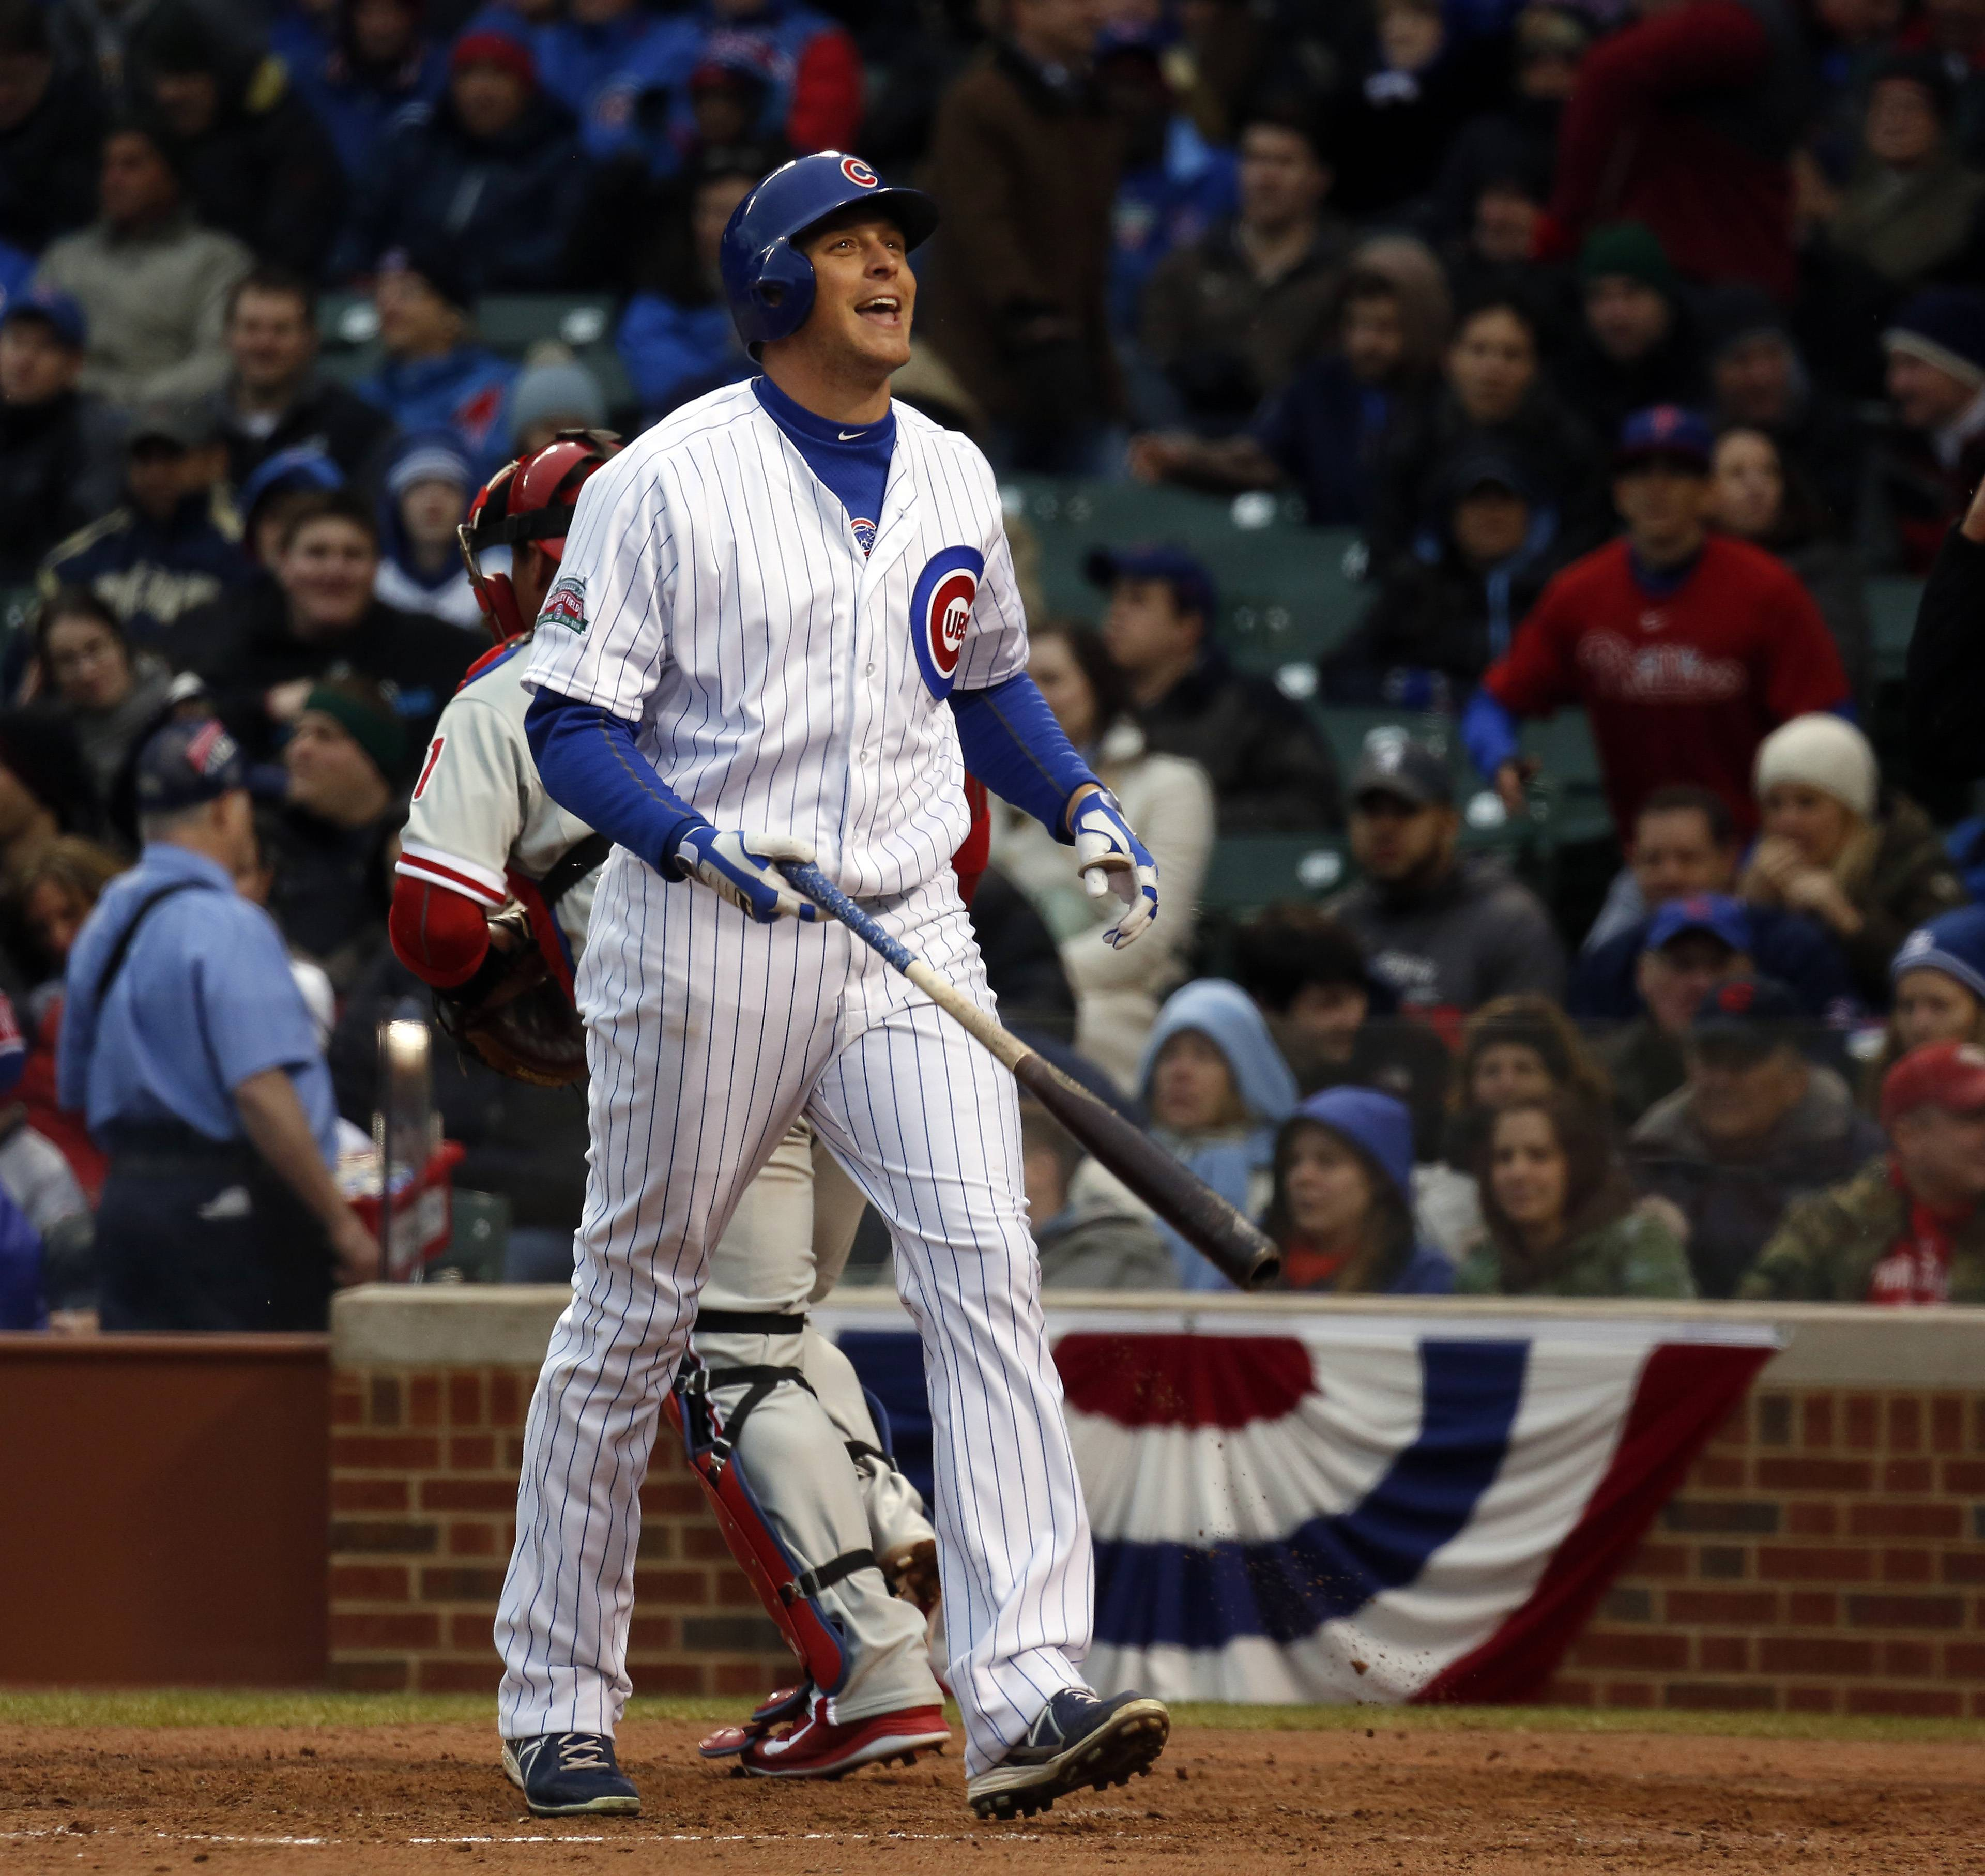 Cubs attack woefully offensive